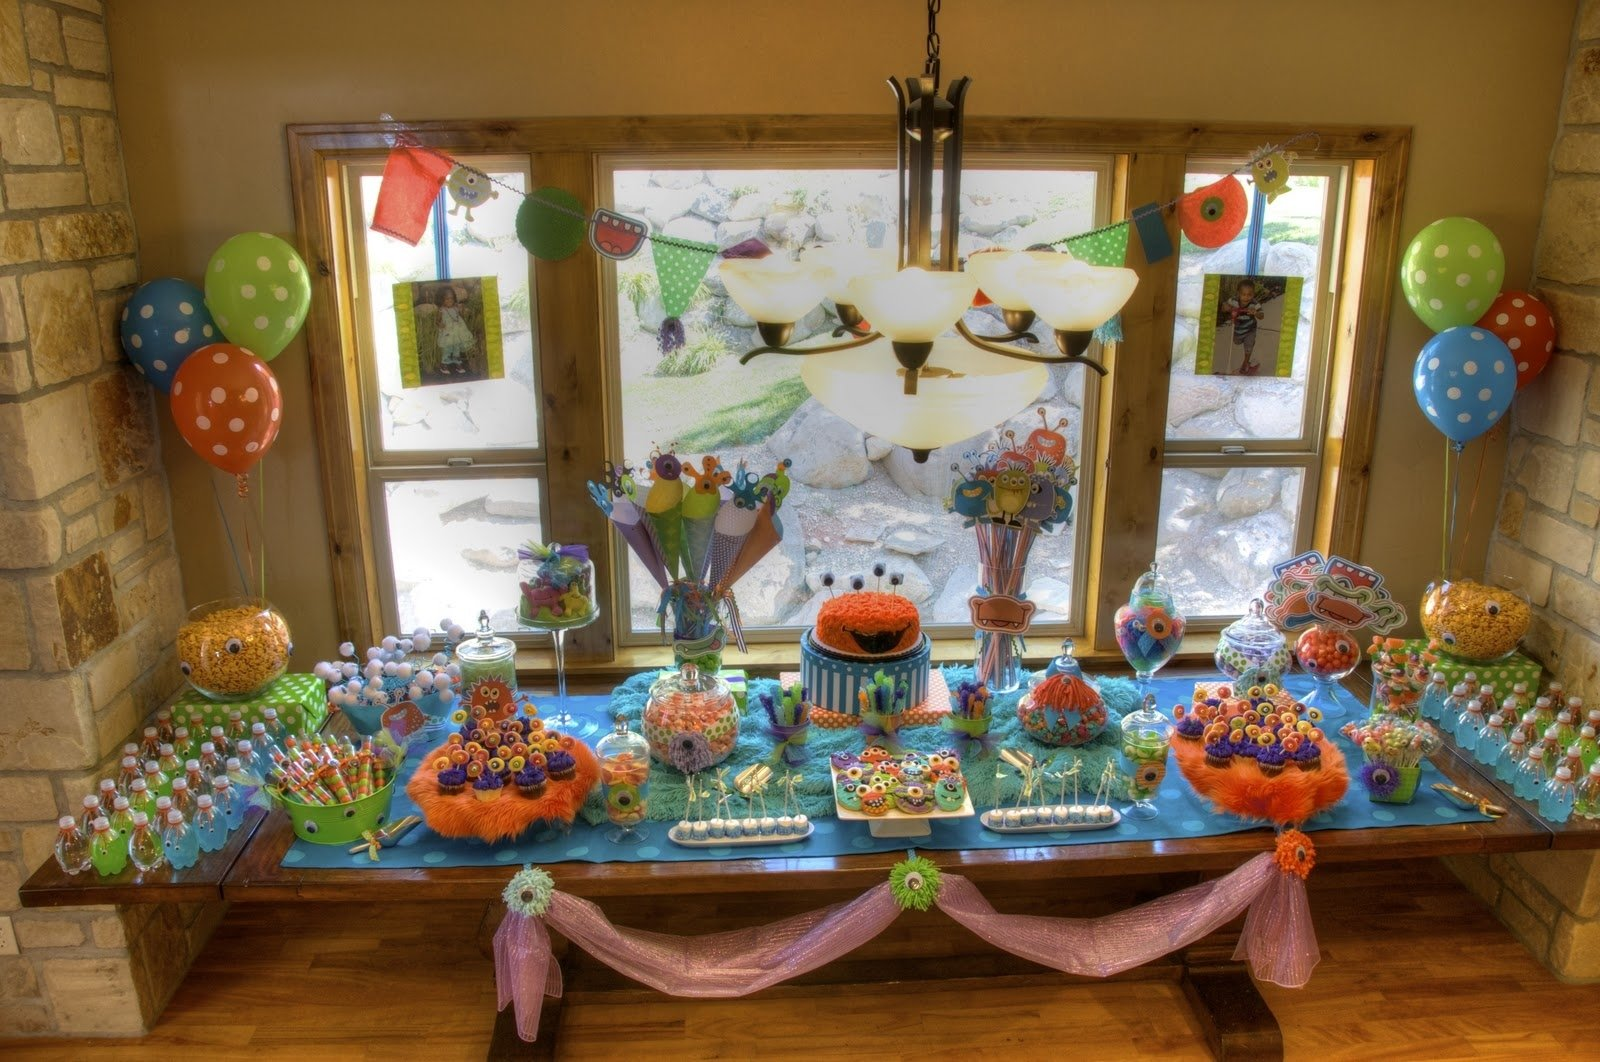 10 Lovable Party Ideas For A 2 Year Old cute year birthday party ideas entertainment ideas for visit 53